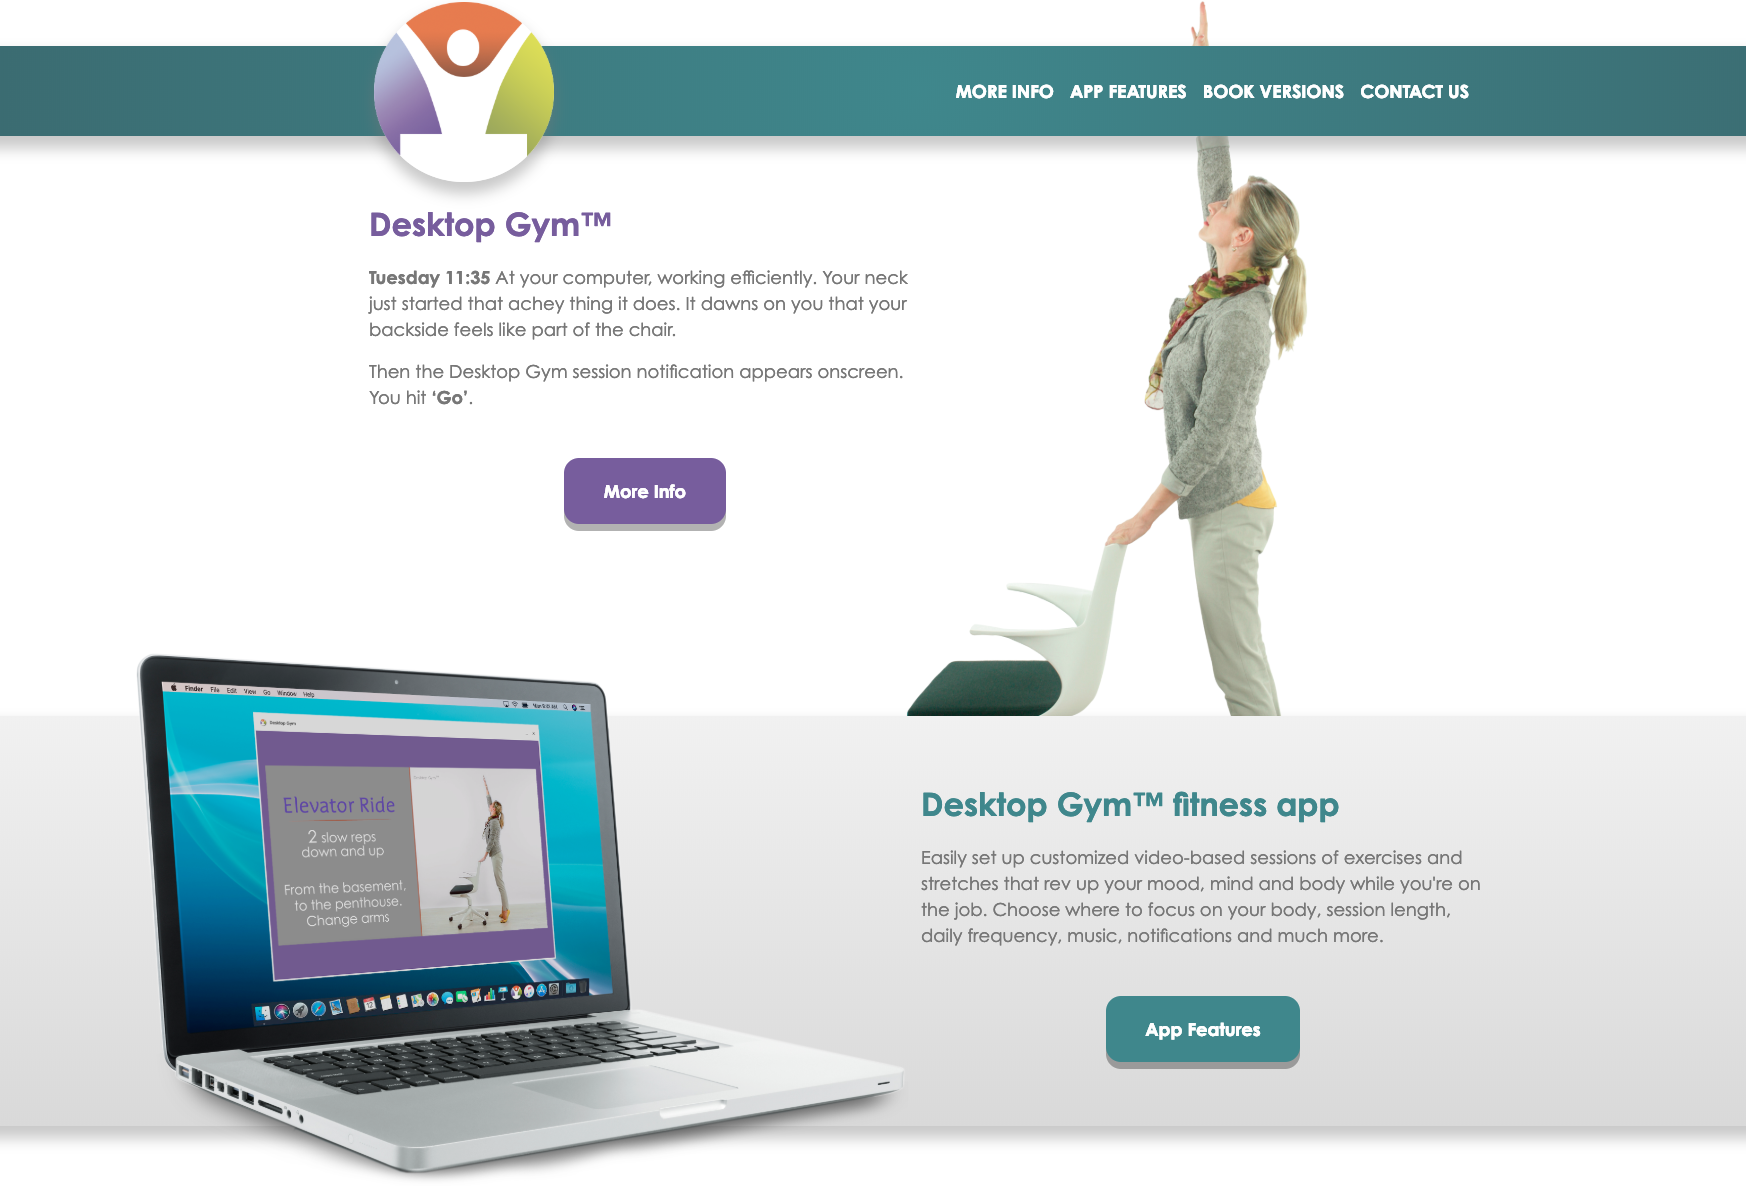 Desktop Gym website